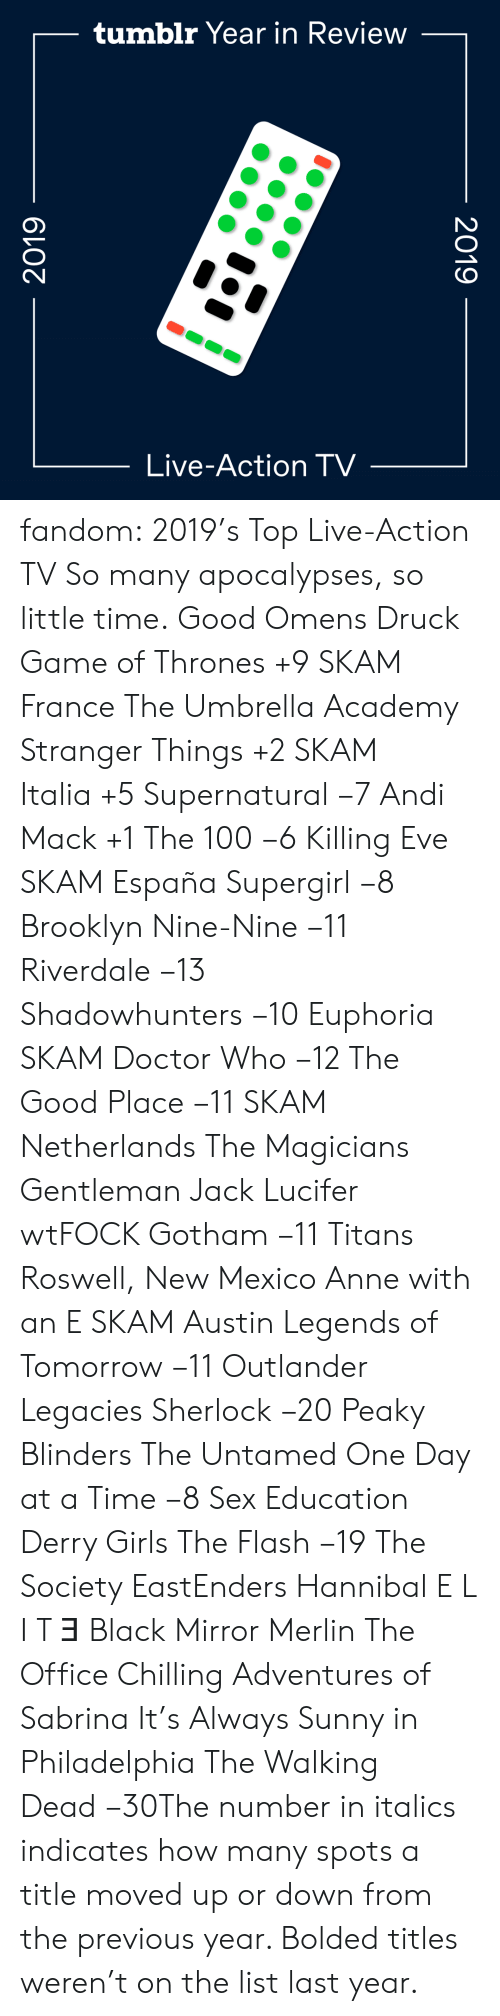 Mexico: tumblr Year in Review  Live-Action TV-  2019  2019 fandom:  2019's Top Live-Action TV  So many apocalypses, so little time.  Good Omens  Druck  Game of Thrones +9  SKAM France  The Umbrella Academy  Stranger Things +2  SKAM Italia +5  Supernatural −7  Andi Mack +1  The 100 −6  Killing Eve   SKAM España  Supergirl −8  Brooklyn Nine-Nine −11  Riverdale −13  Shadowhunters −10  Euphoria  SKAM  Doctor Who −12  The Good Place −11  SKAM Netherlands  The Magicians  Gentleman Jack  Lucifer  wtFOCK  Gotham −11  Titans  Roswell, New Mexico  Anne with an E  SKAM Austin  Legends of Tomorrow −11  Outlander  Legacies  Sherlock −20  Peaky Blinders  The Untamed  One Day at a Time −8  Sex Education  Derry Girls  The Flash −19  The Society  EastEnders  Hannibal  E L I T Ǝ  Black Mirror  Merlin  The Office  Chilling Adventures of Sabrina  It's Always Sunny in Philadelphia The Walking Dead −30The number in italics indicates how many spots a title moved up or down from the previous year. Bolded titles weren't on the list last year.